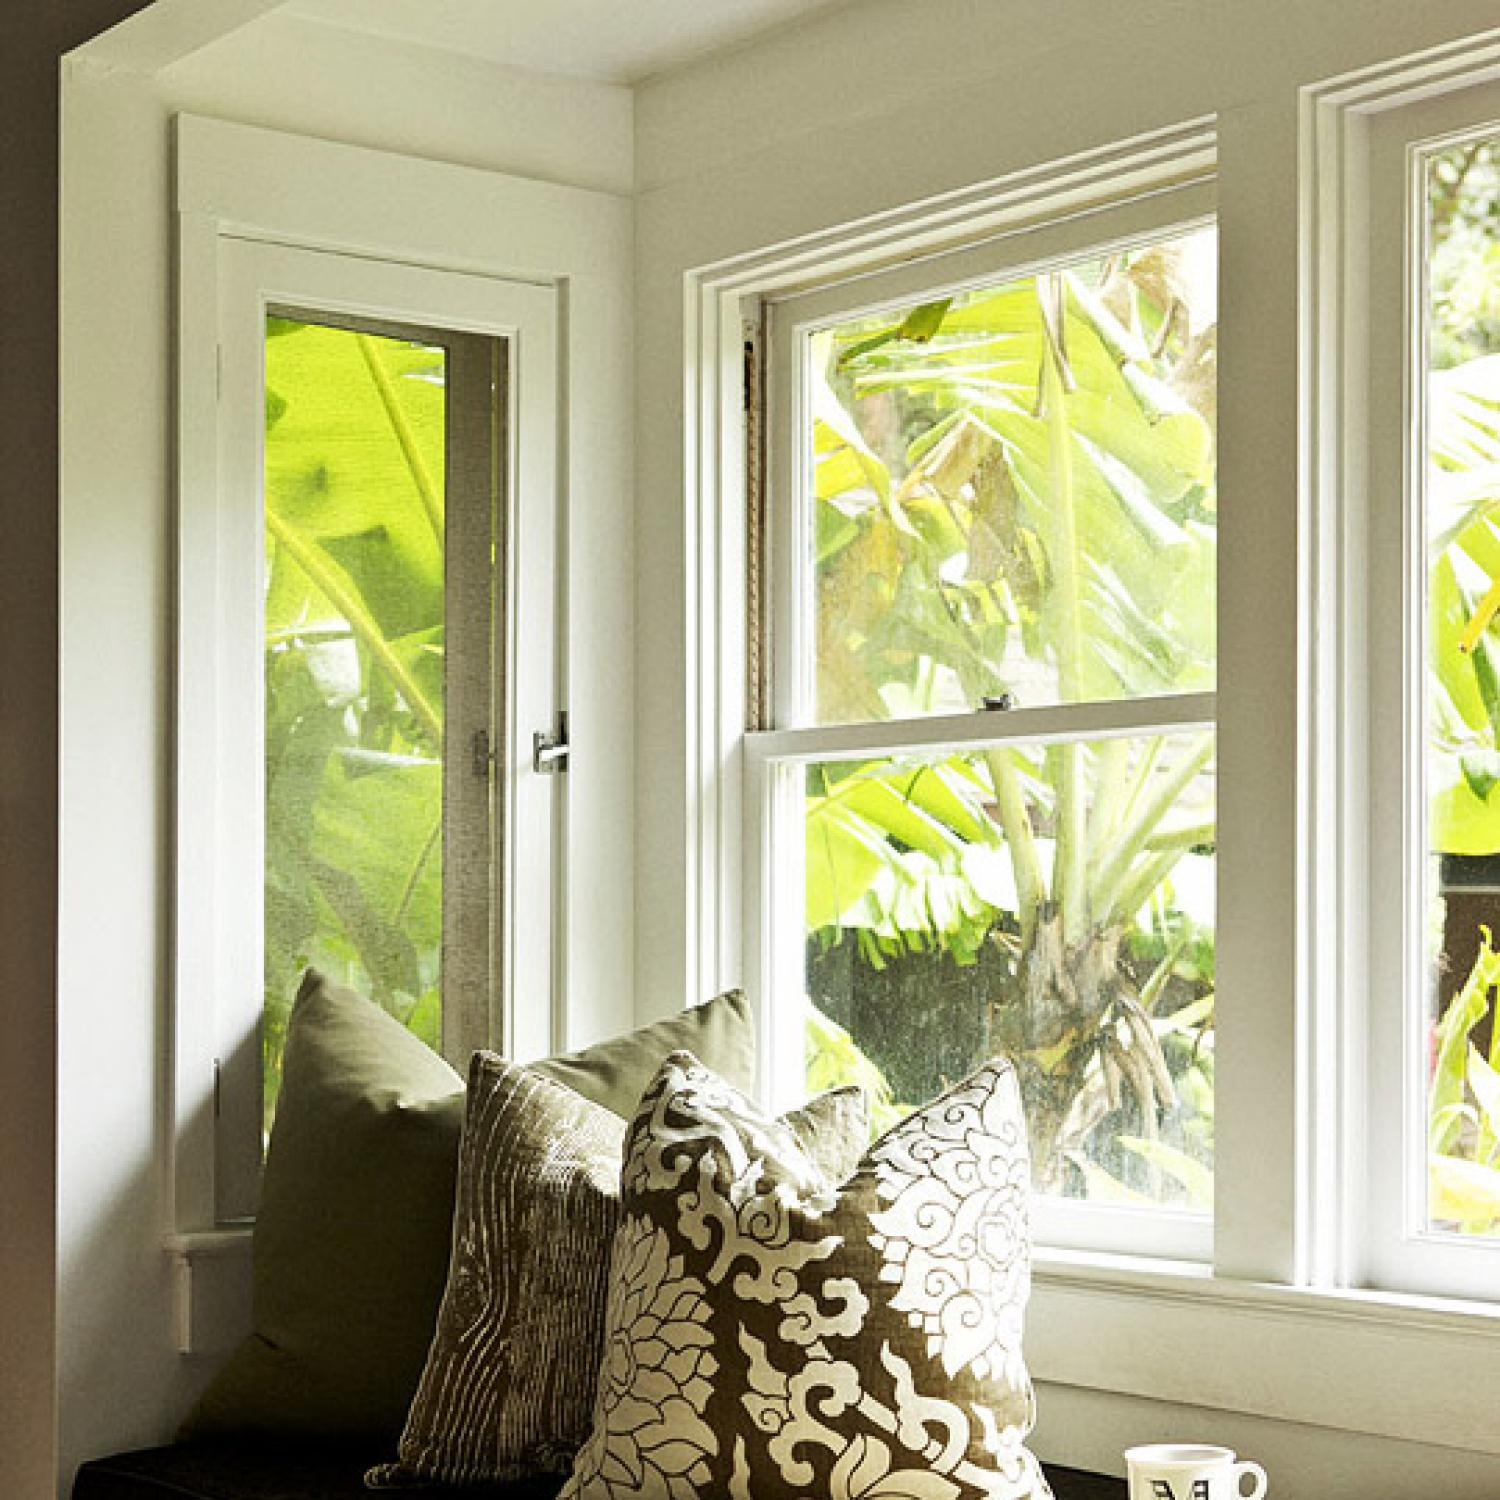 Home Design Ideas Videos: Decorating Ideas: 15 Window Seats